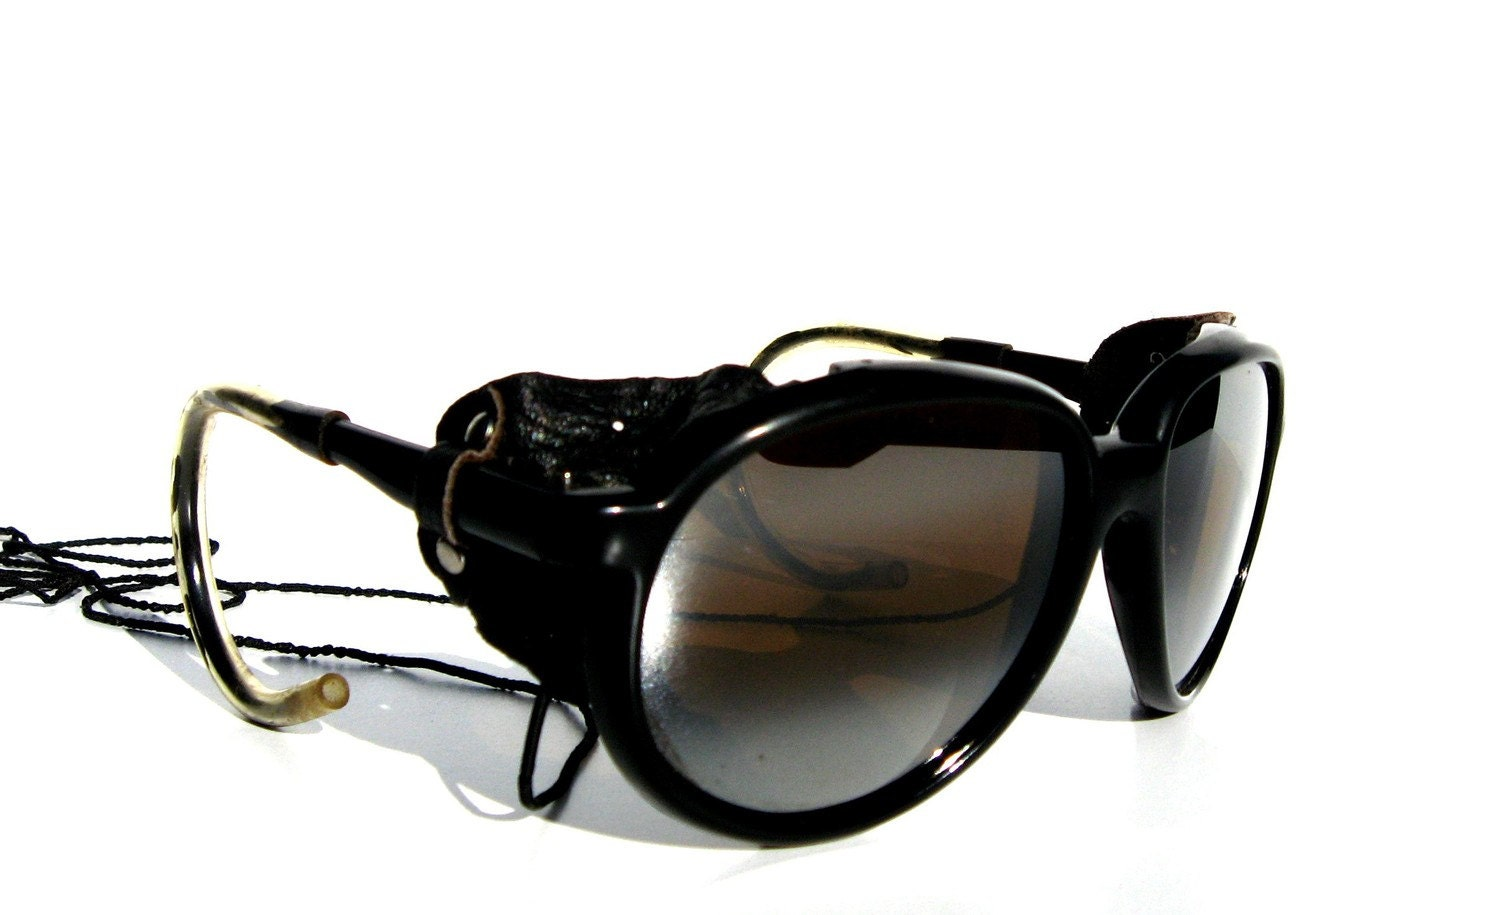 Leather Side Shields For Glasses Sunglasses Www Tapdance Org